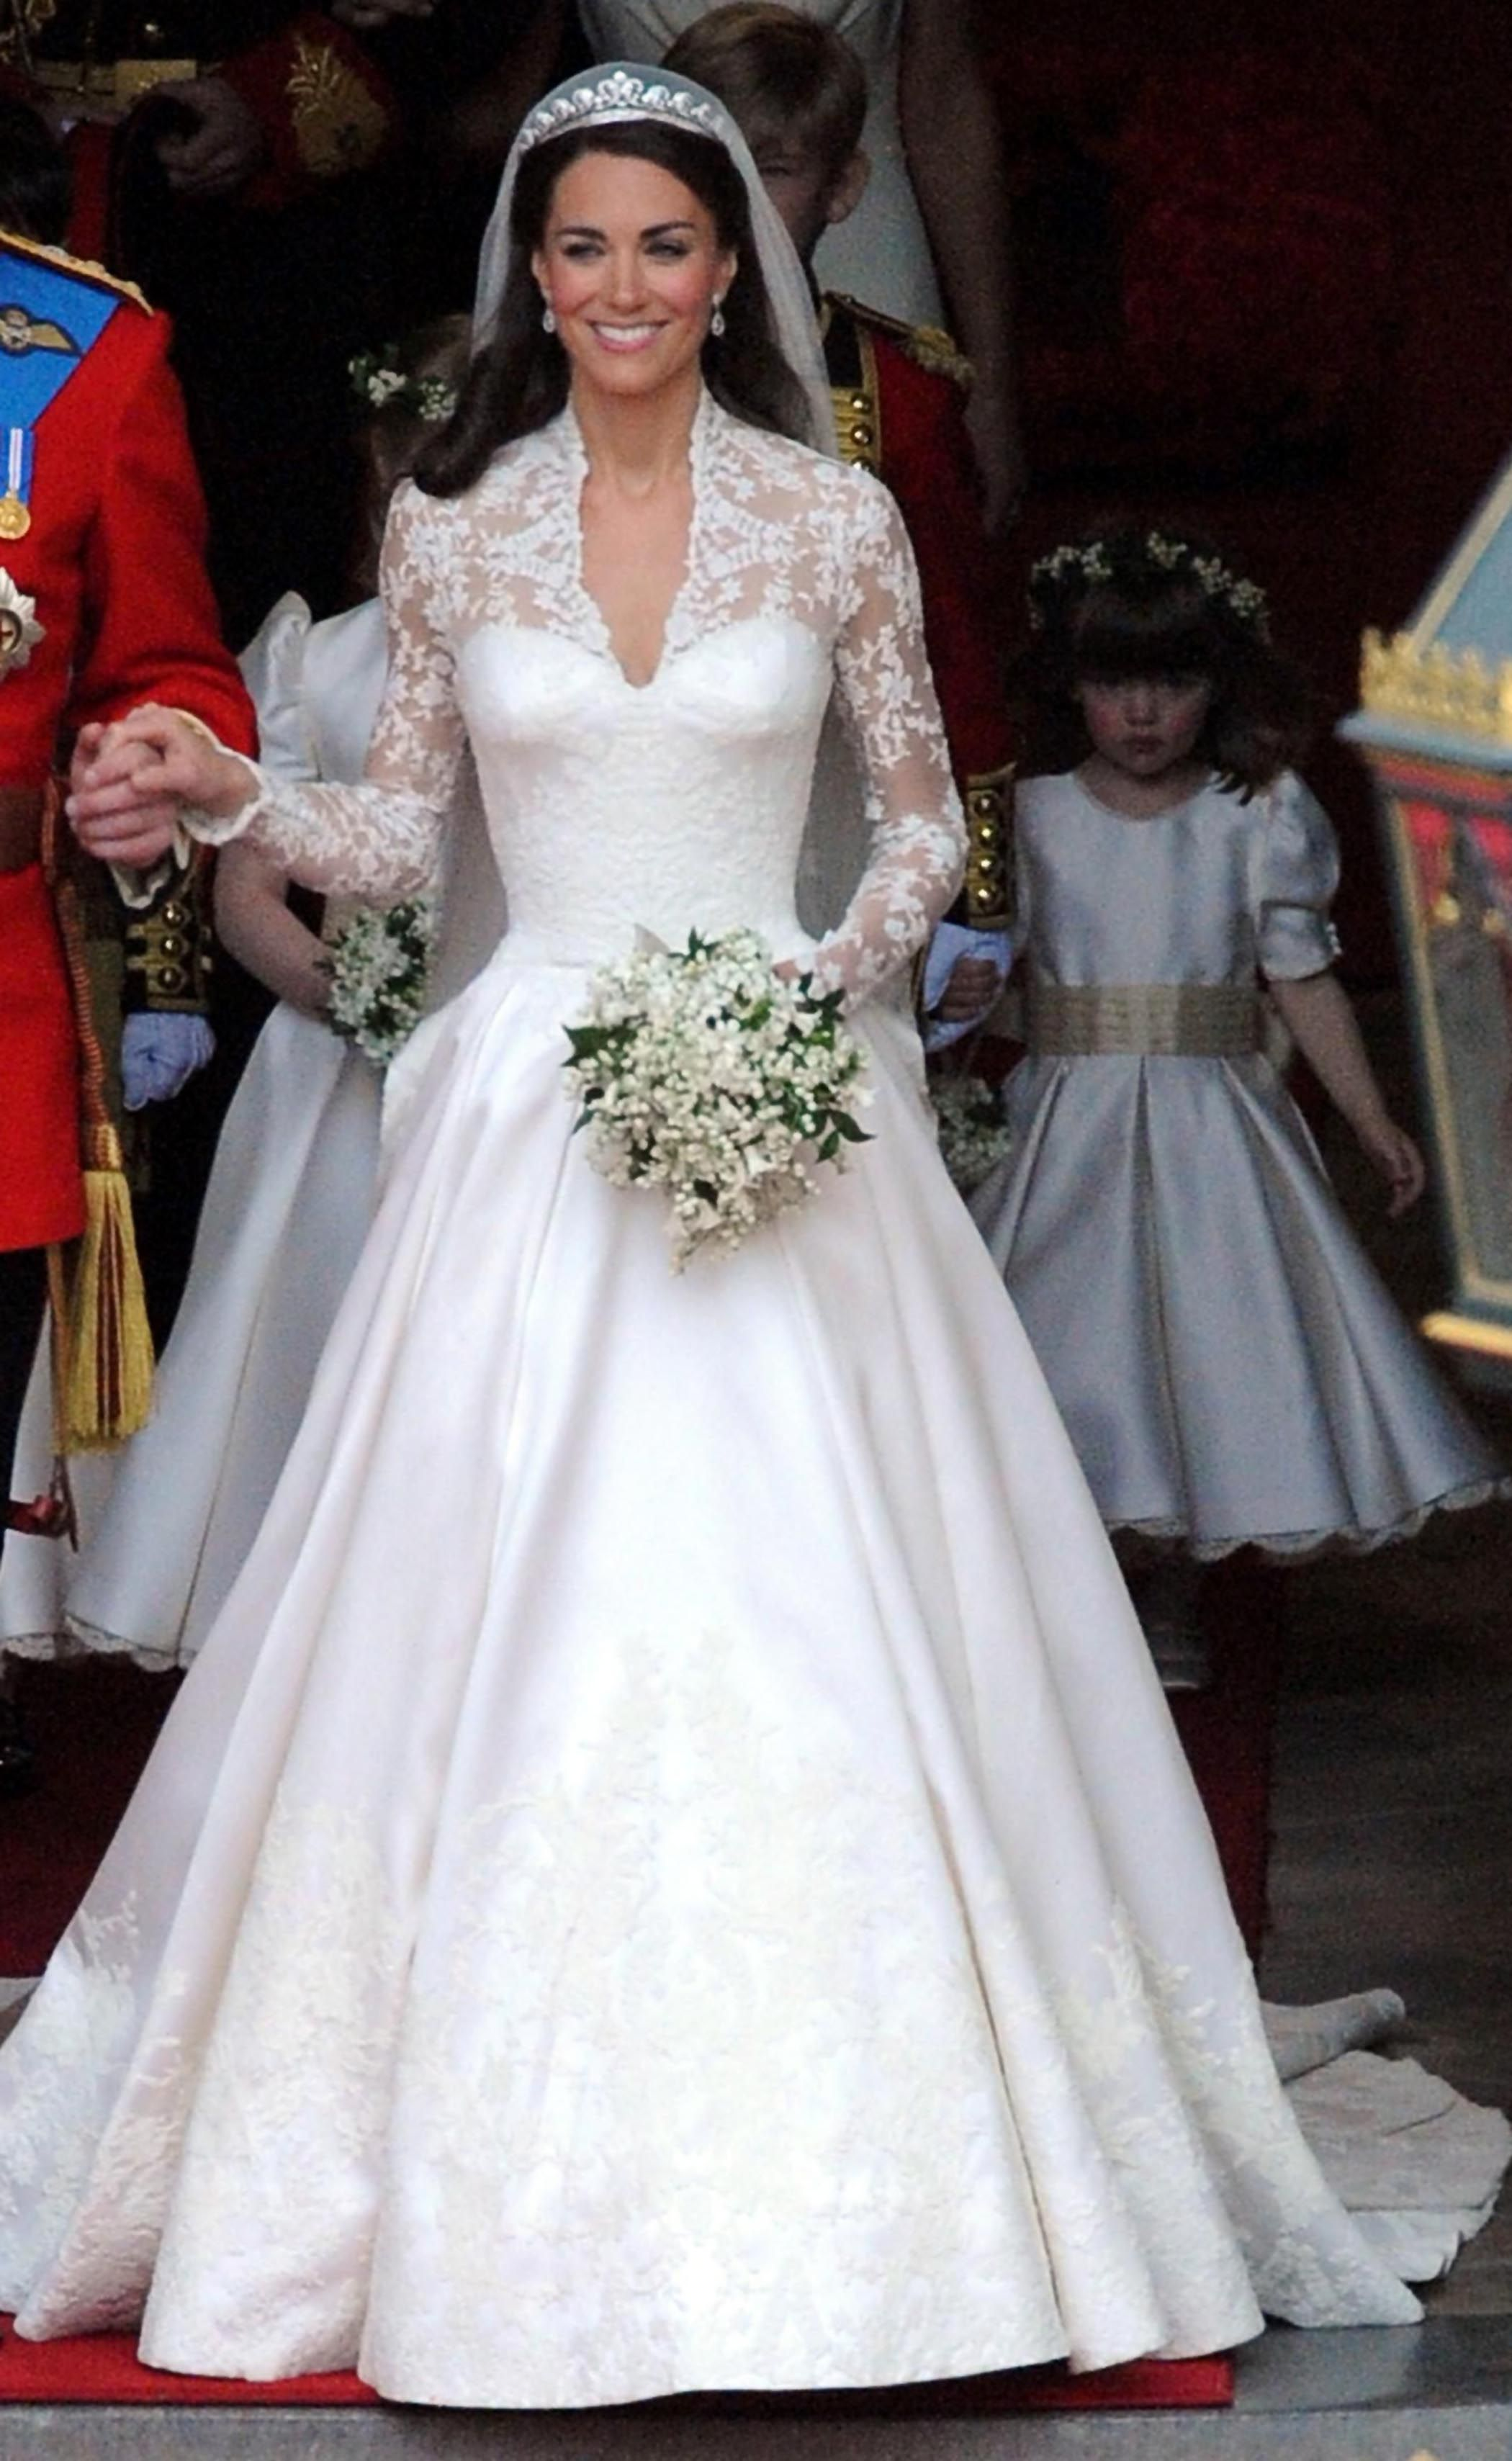 Kate Middleton In Sarah Burton For Alexander Mcqueen Her Wedding To Prince William On April Stole My Dress